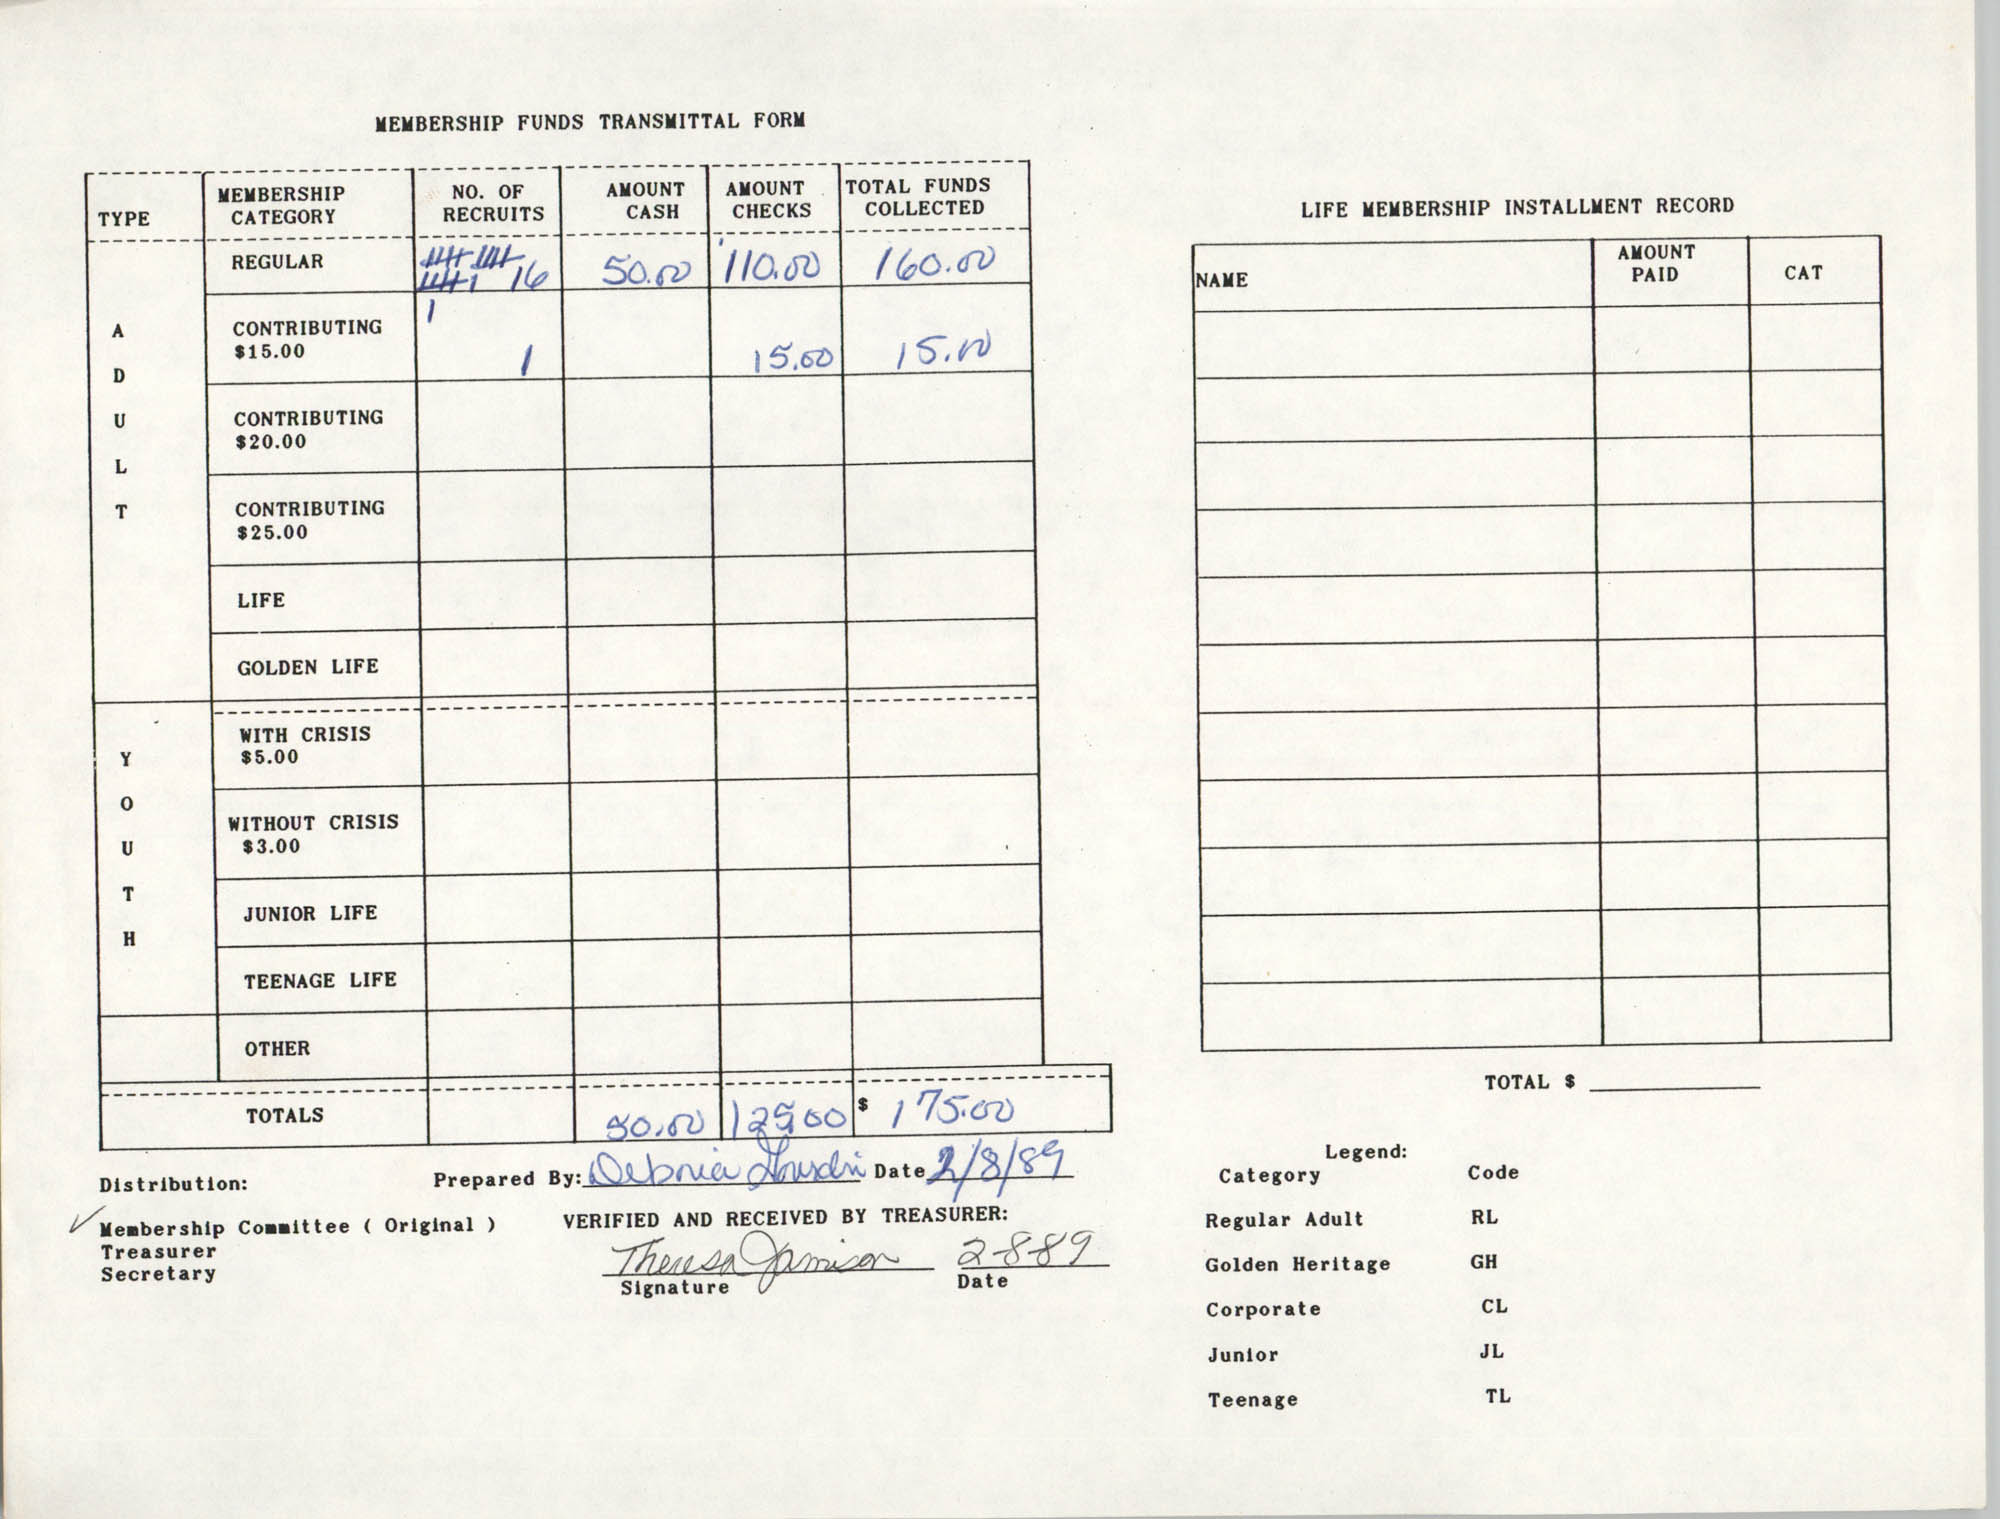 Charleston Branch of the NAACP Funds Transmittal Forms, February 1989, Page 2